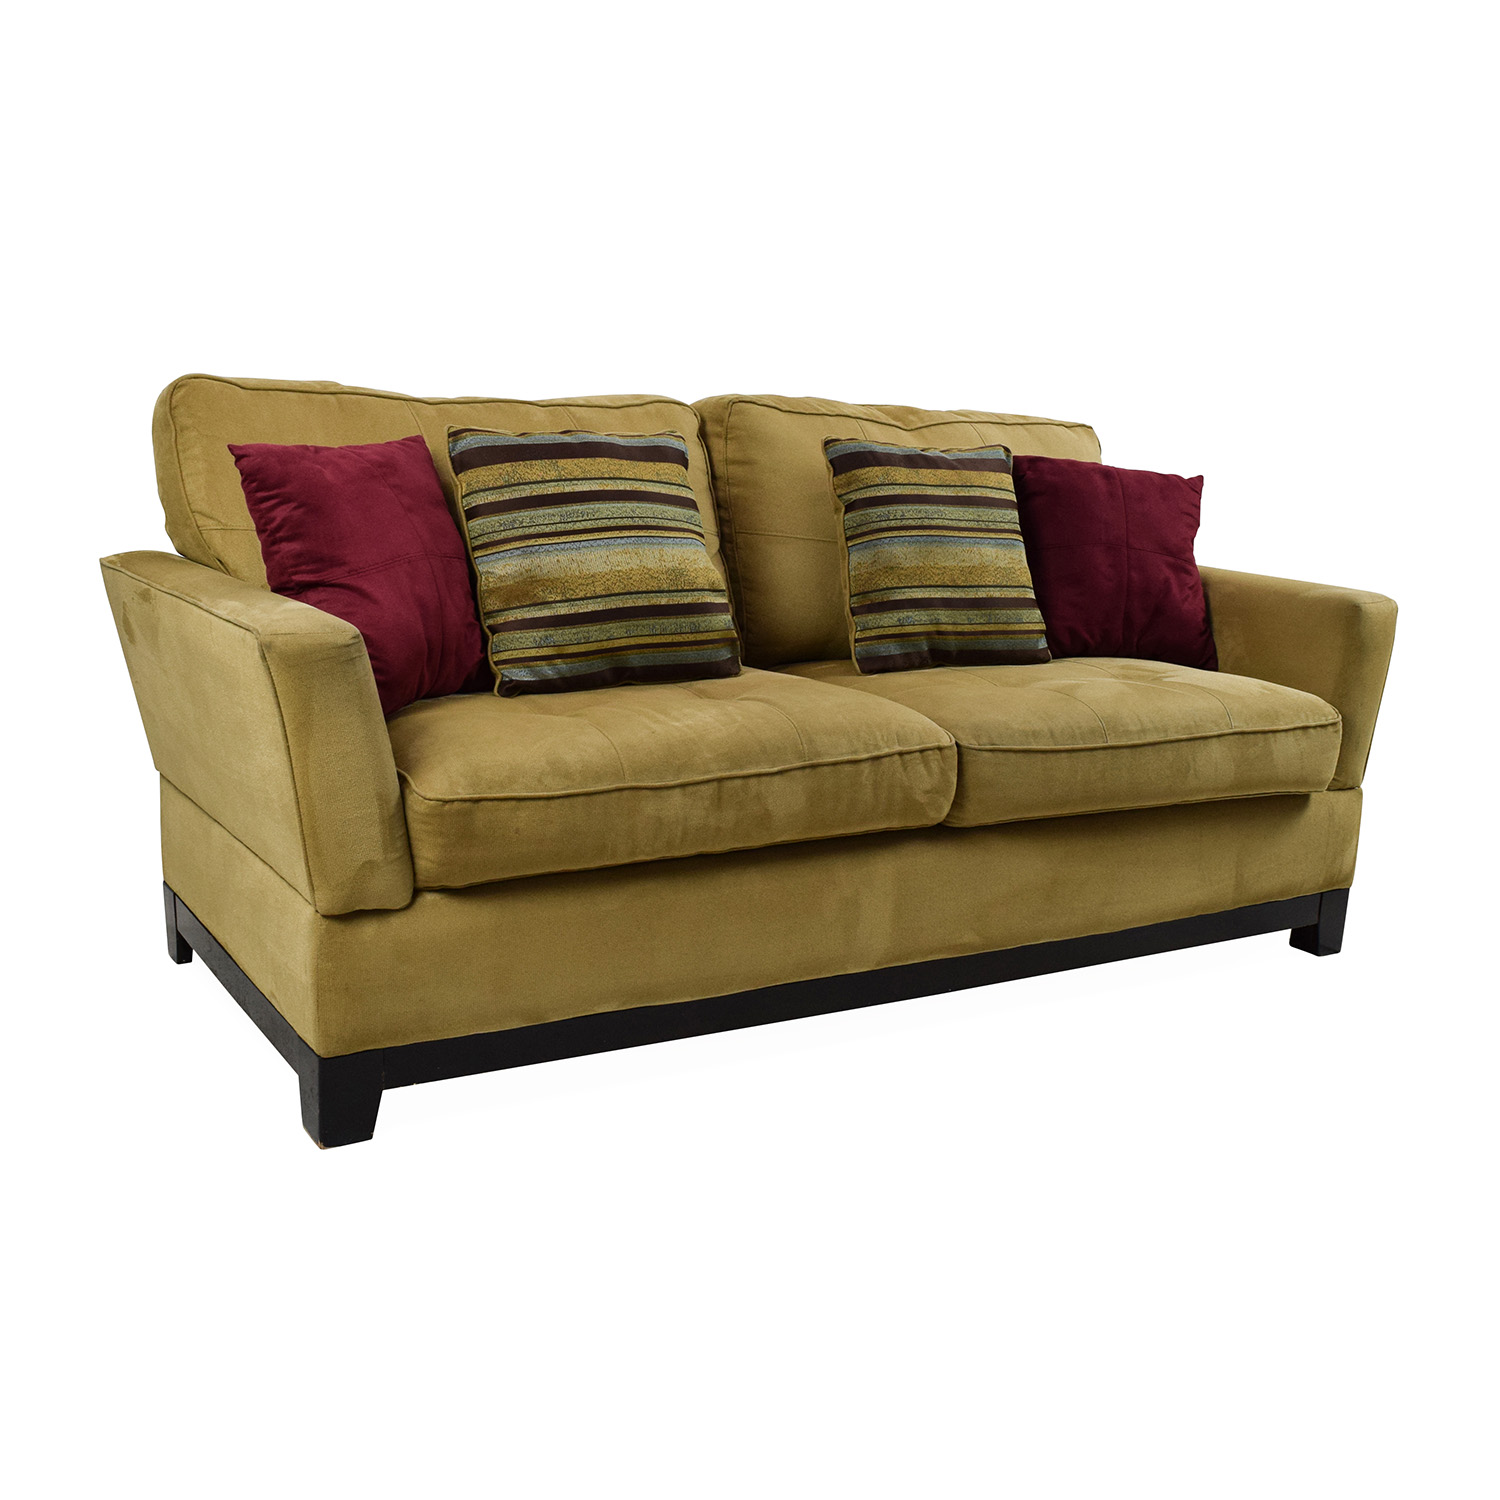 Jennifer Leather Sofas Marvelous Jennifer Leather Sofa